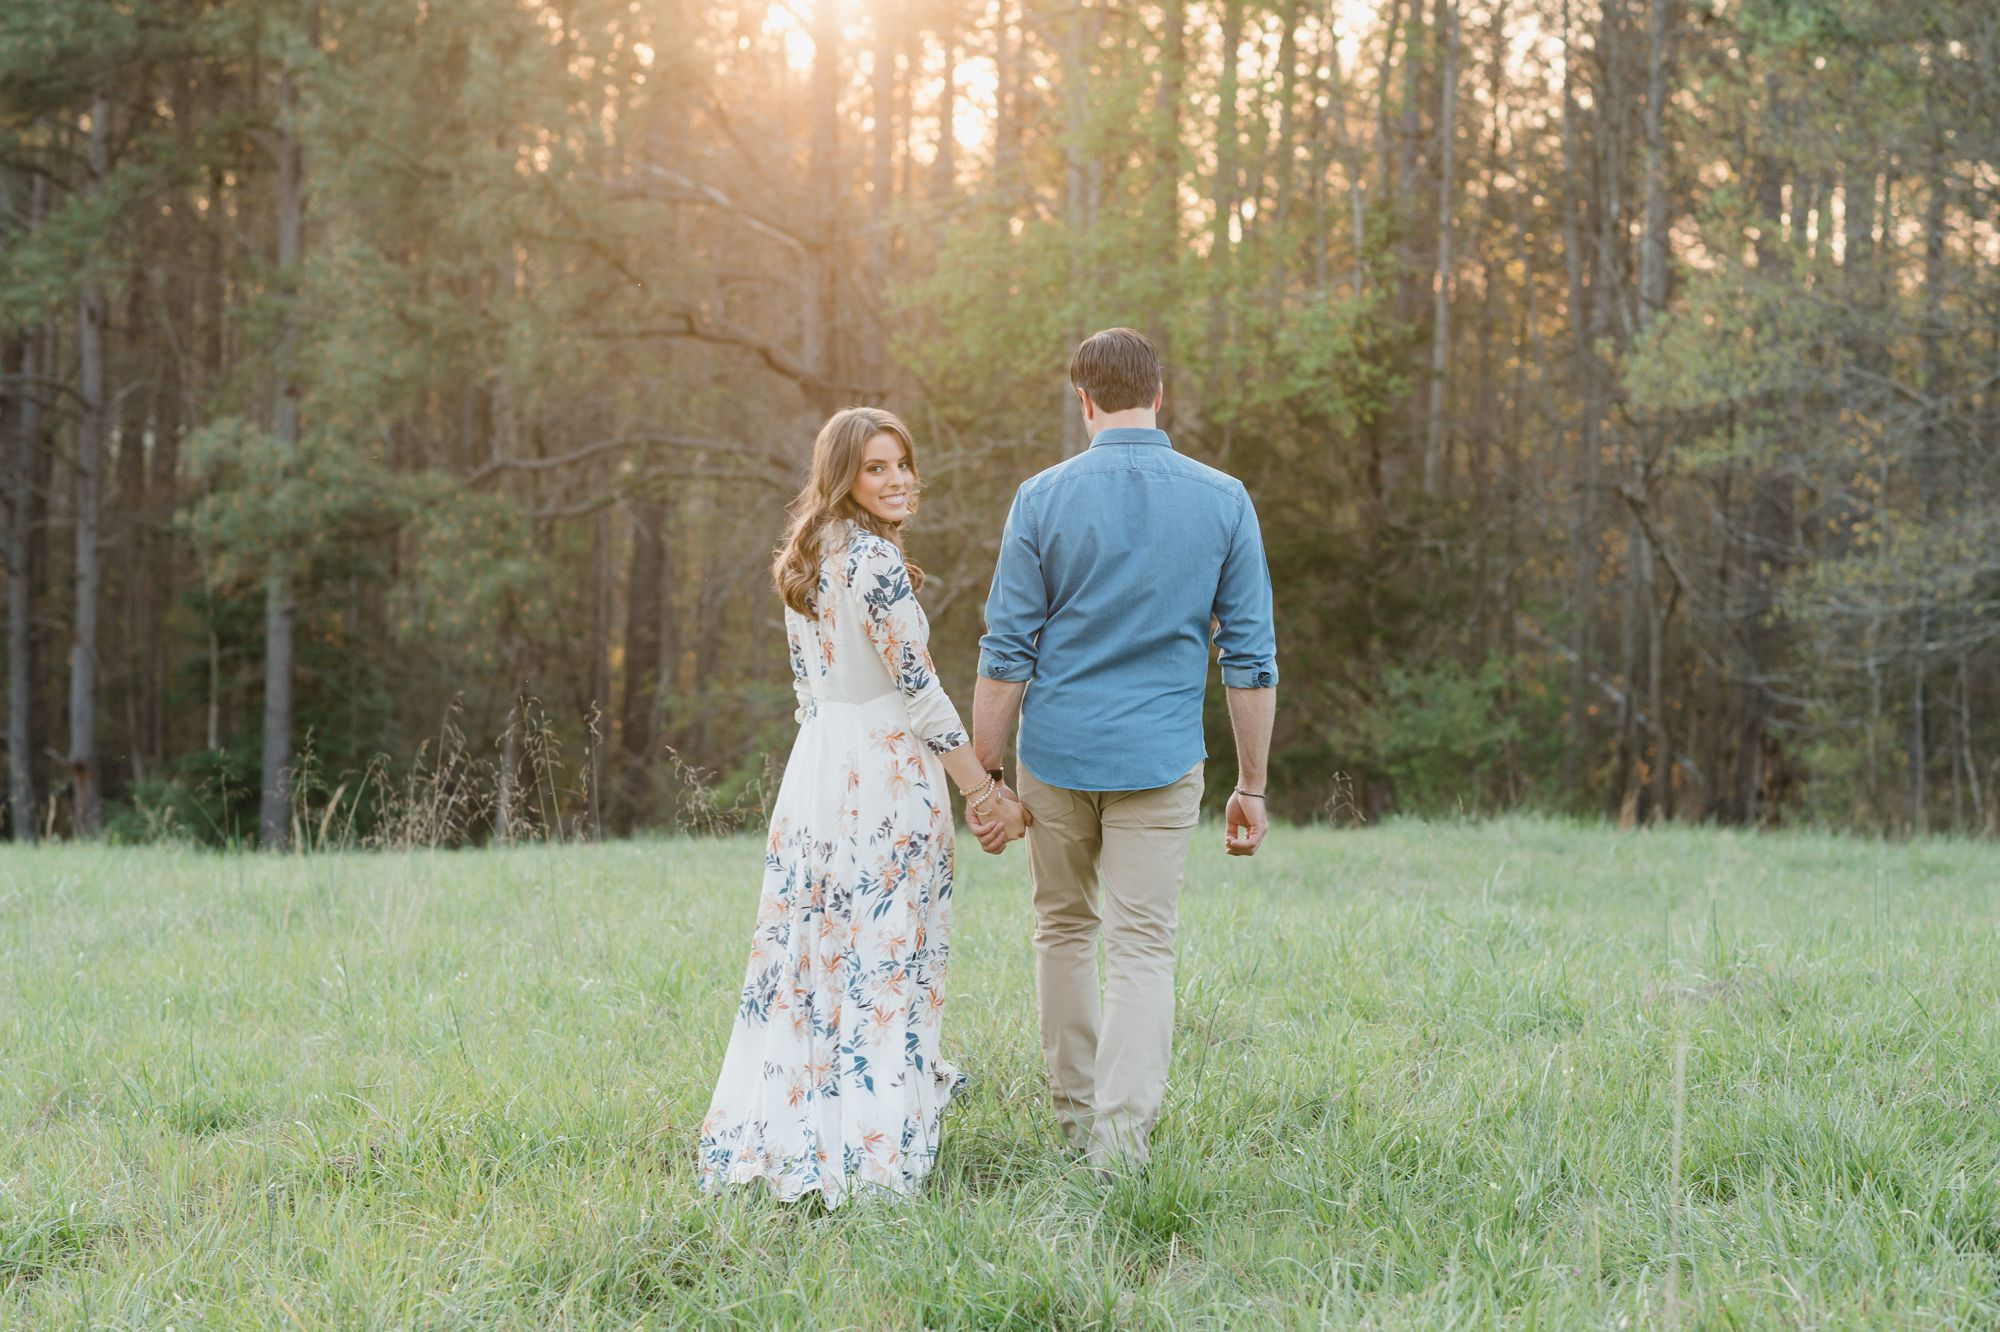 Ivy Place engagement photos